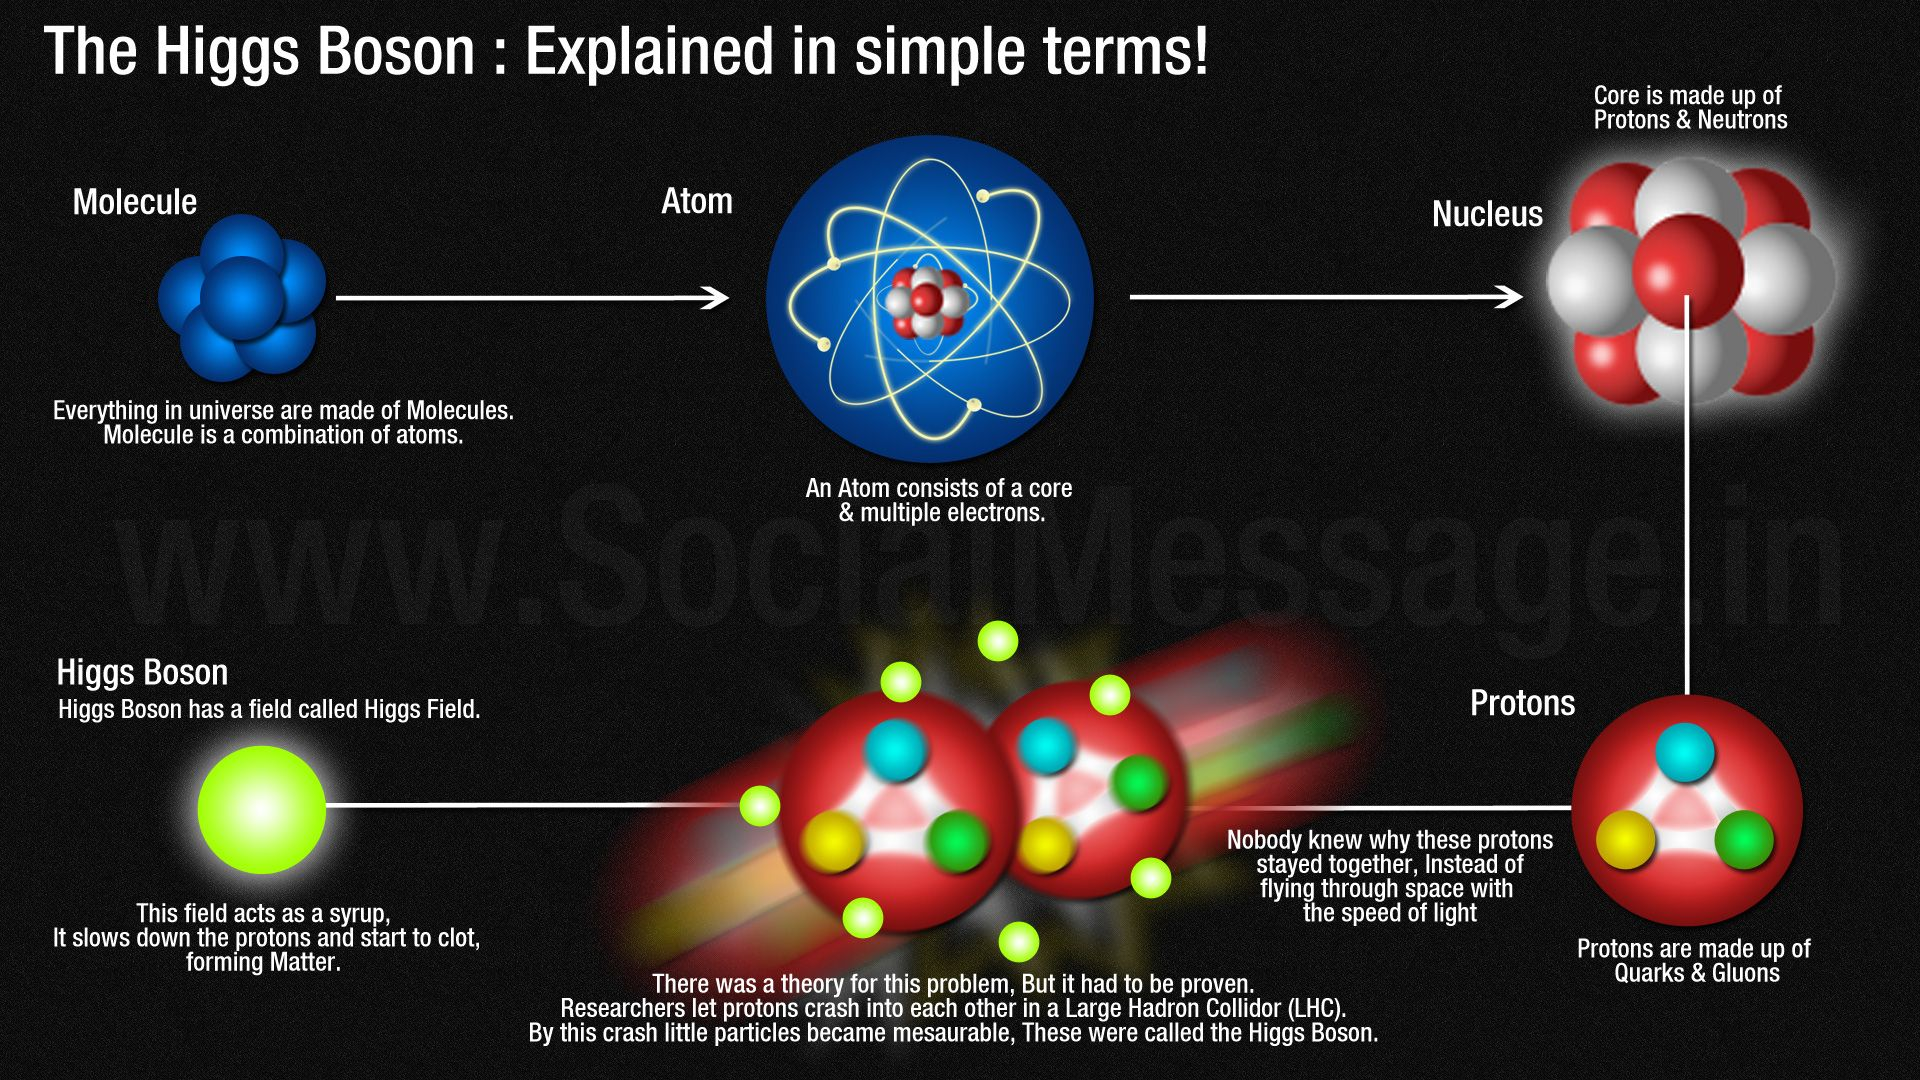 the higgs boson particle essay The higgs boson 1 the god particle : higgs boson 2 the higgs boson or  higgs particle is an elementary particle in the standard model of.